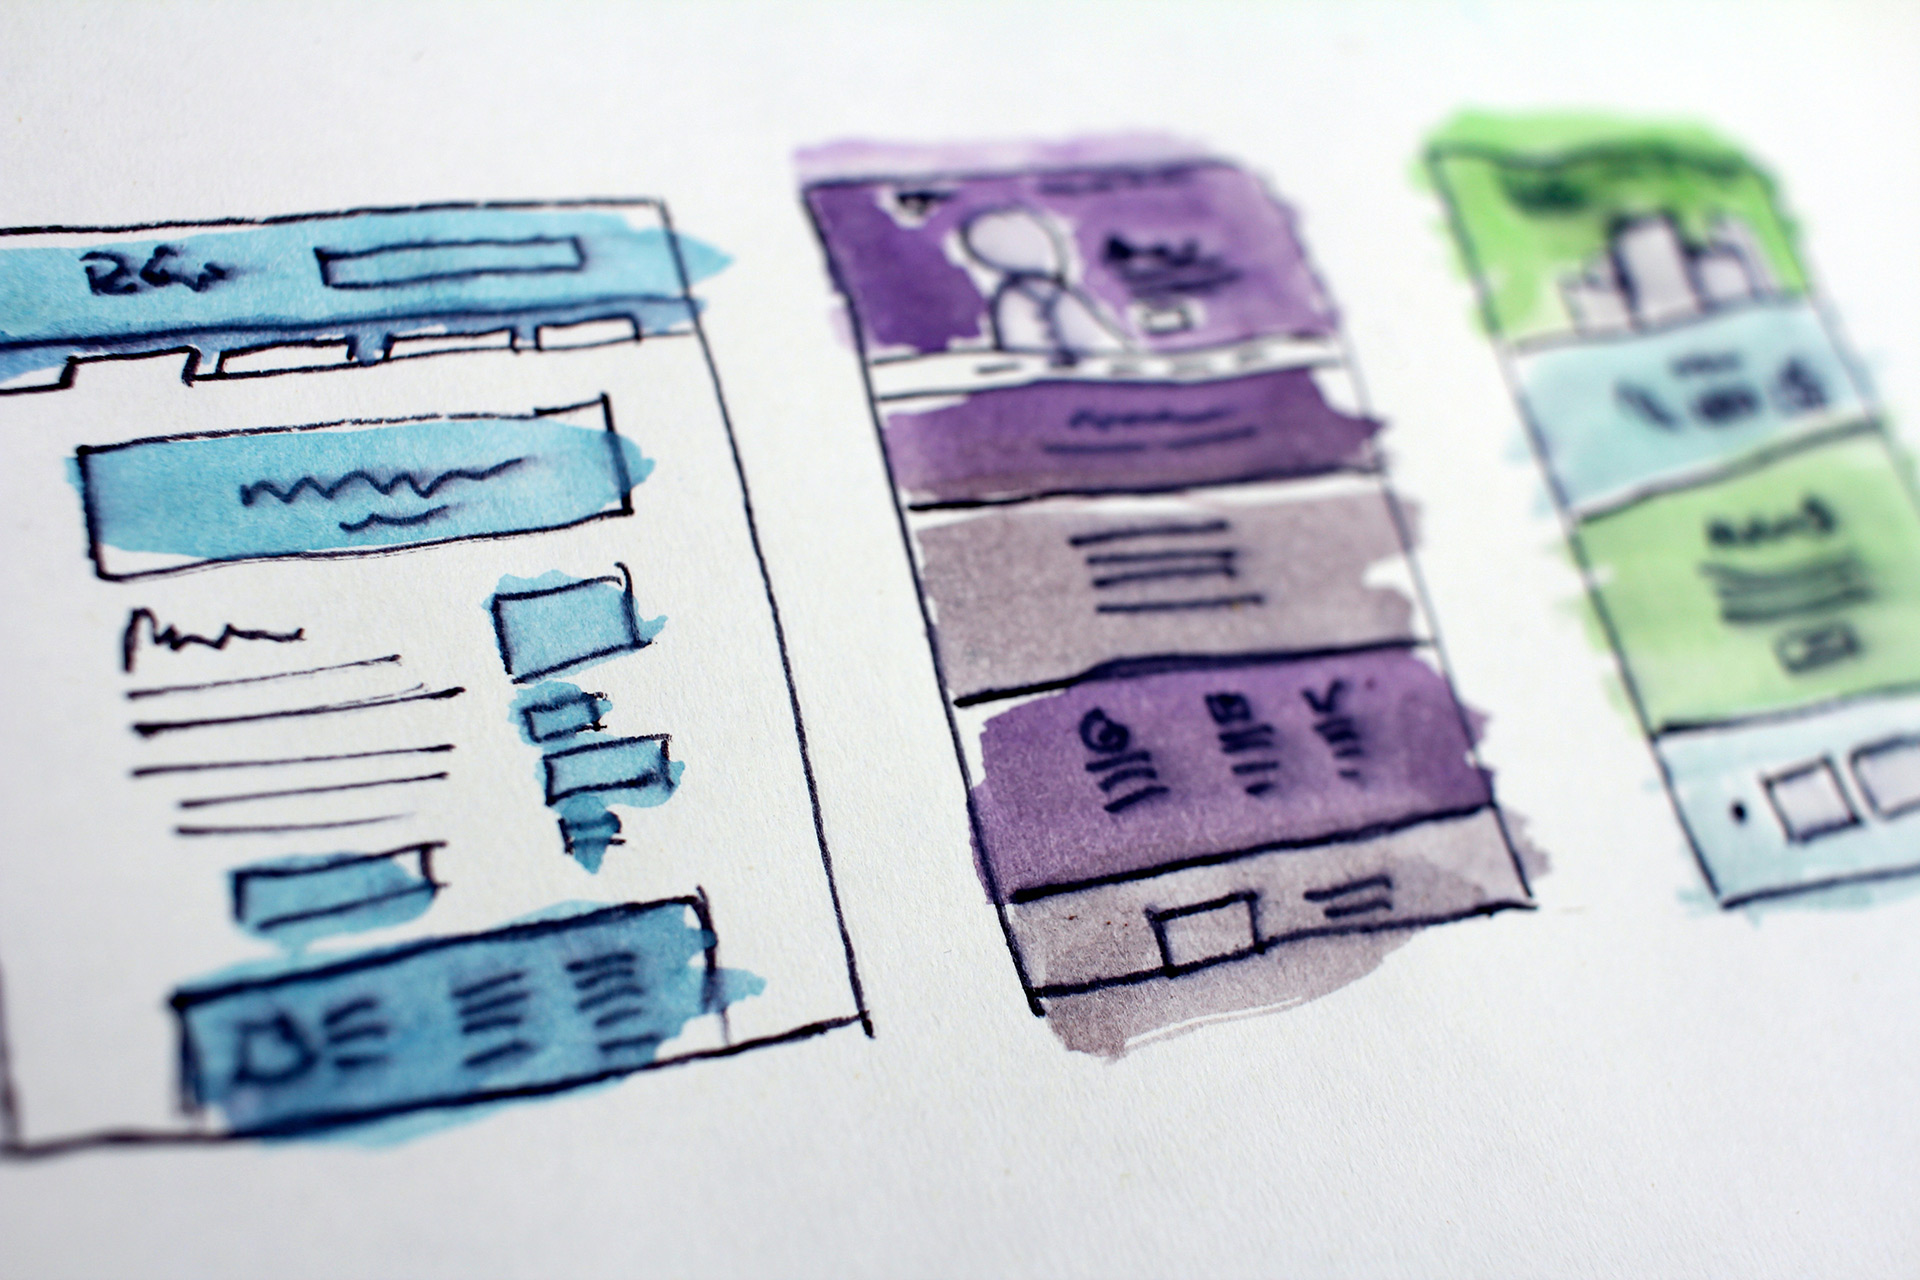 Wordpress theme layouts sketched on paper